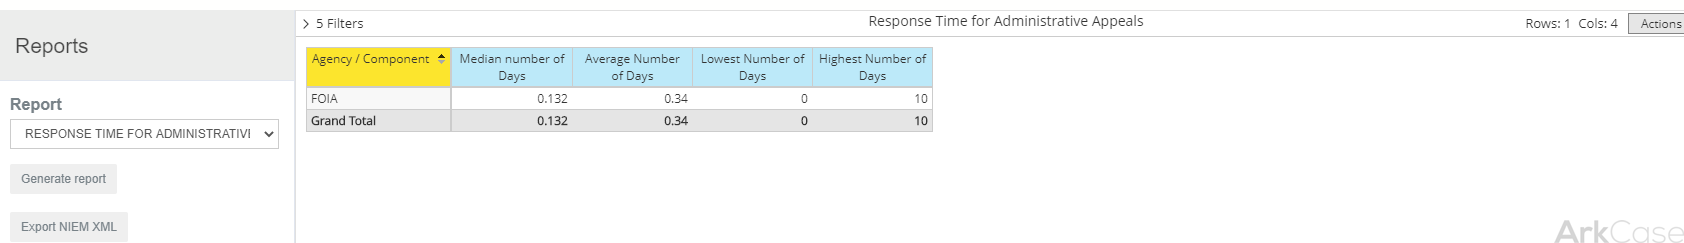 Response Time for Administrative Appeals